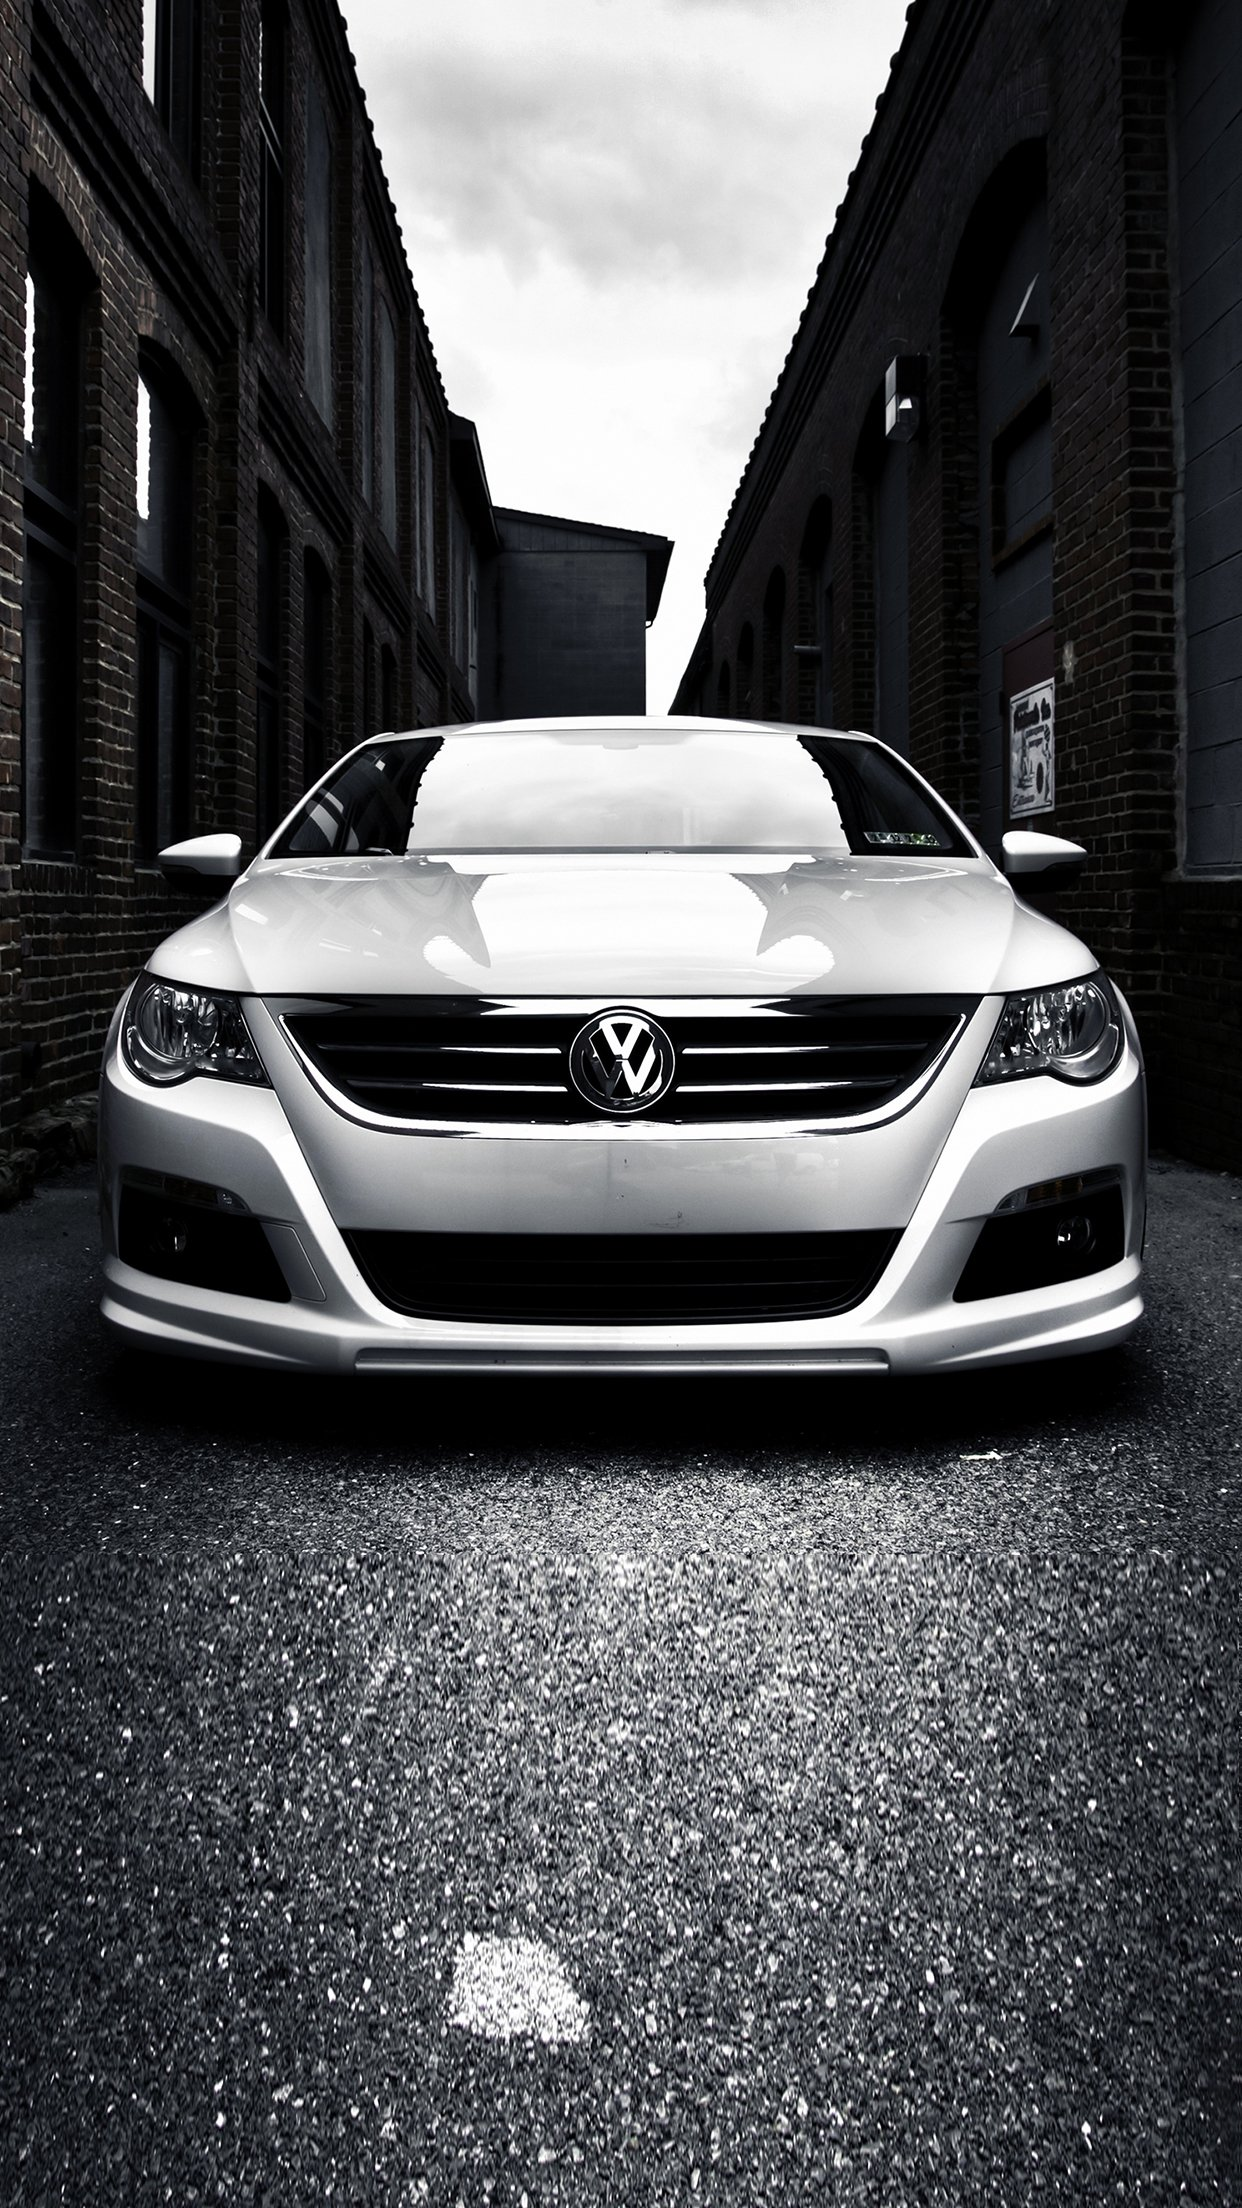 Vw Iphone Wallpapers Wallpaper Cave